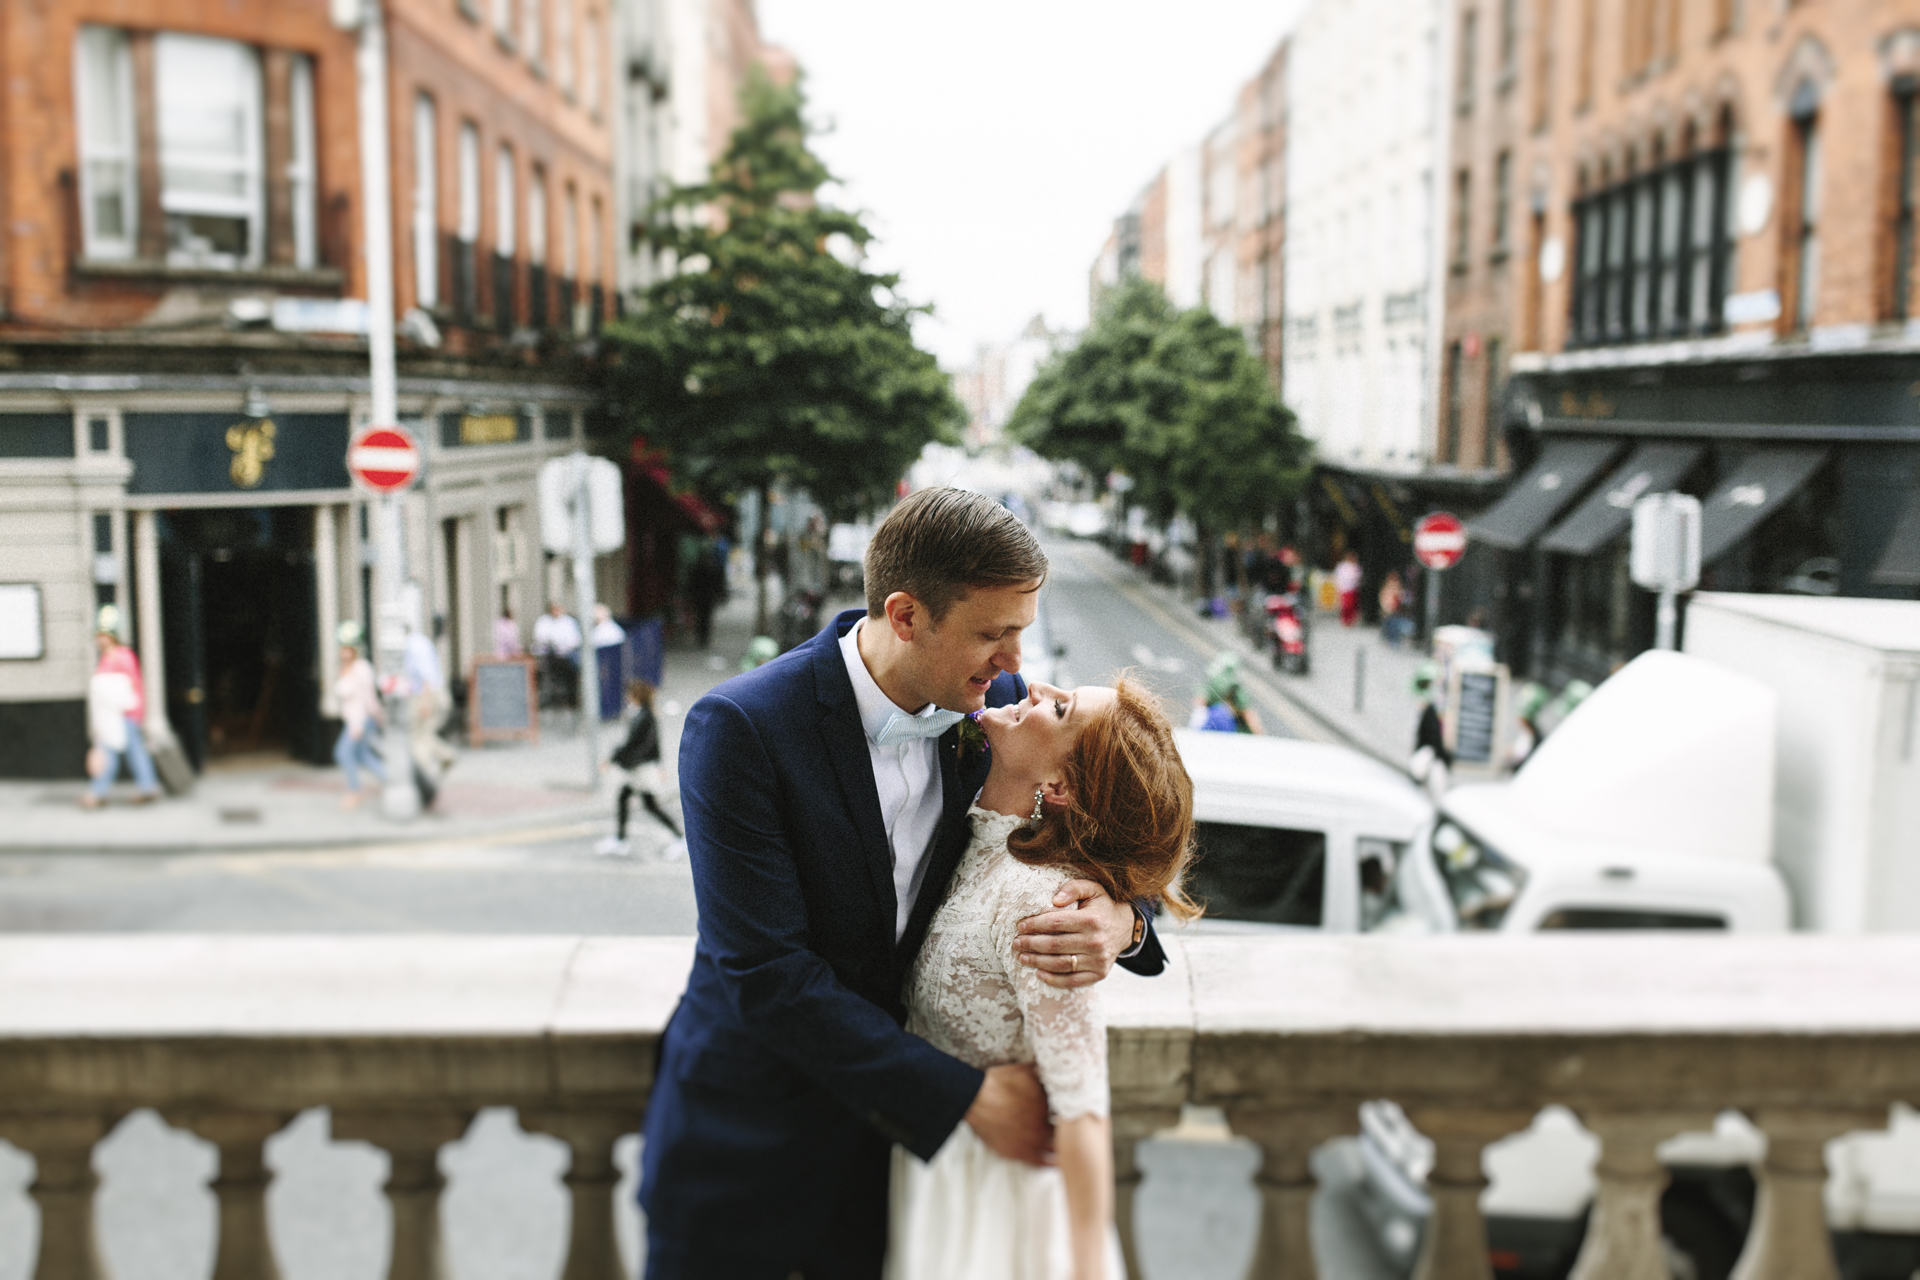 Dublin Wedding Photographer Graciela Vilagudin 00178.jpg